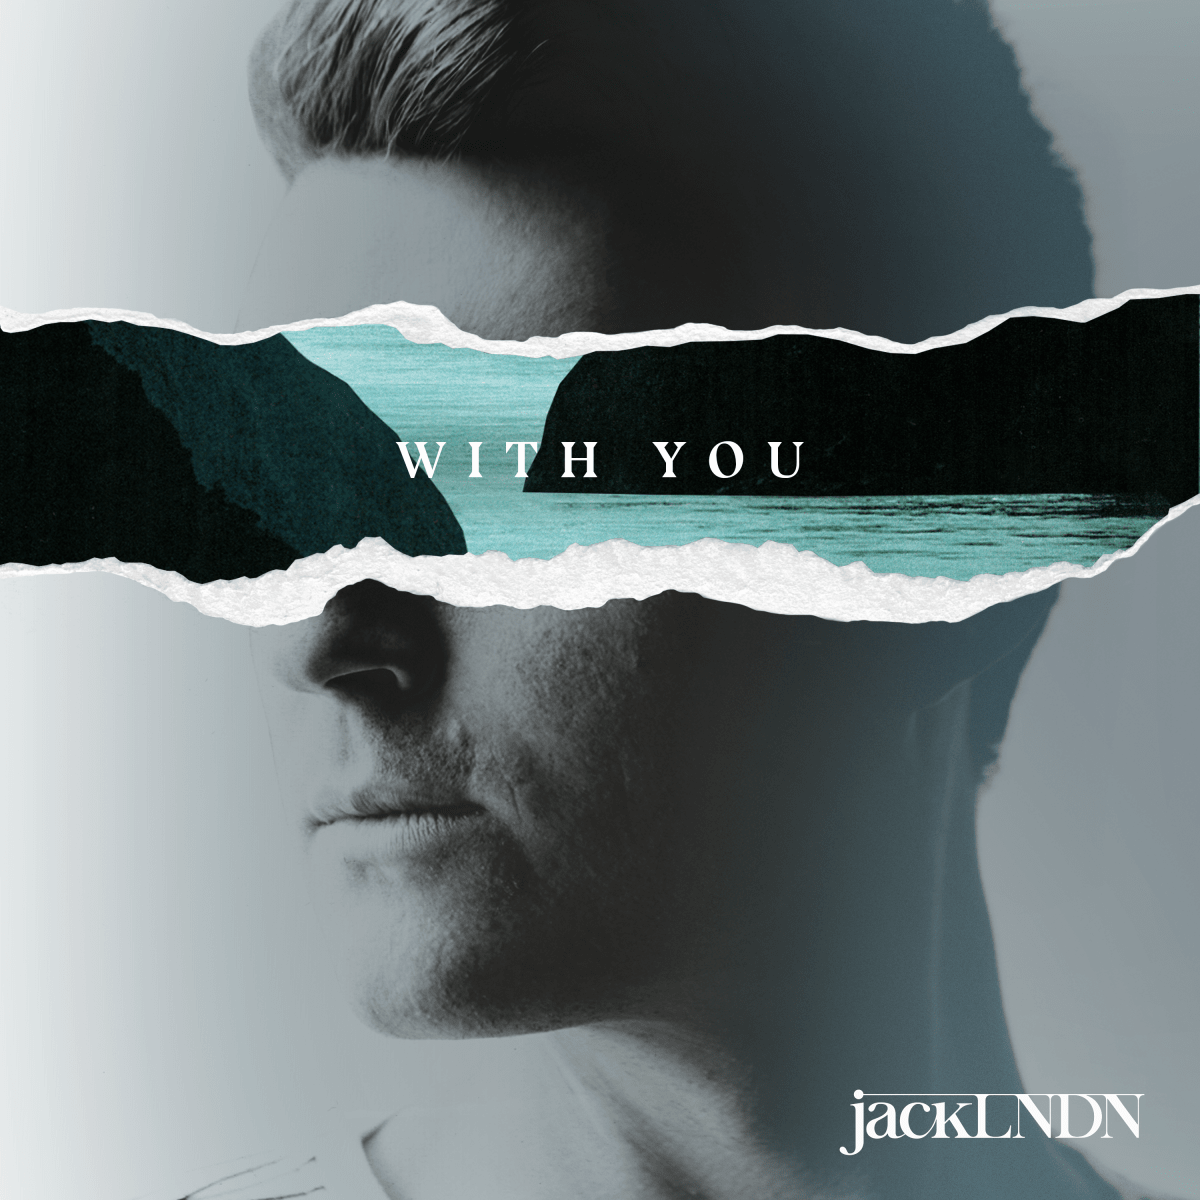 """Premiere: jackLNDN's New Single """"With You"""" Is An Ode To The Excitement Of New Love And Adventure"""